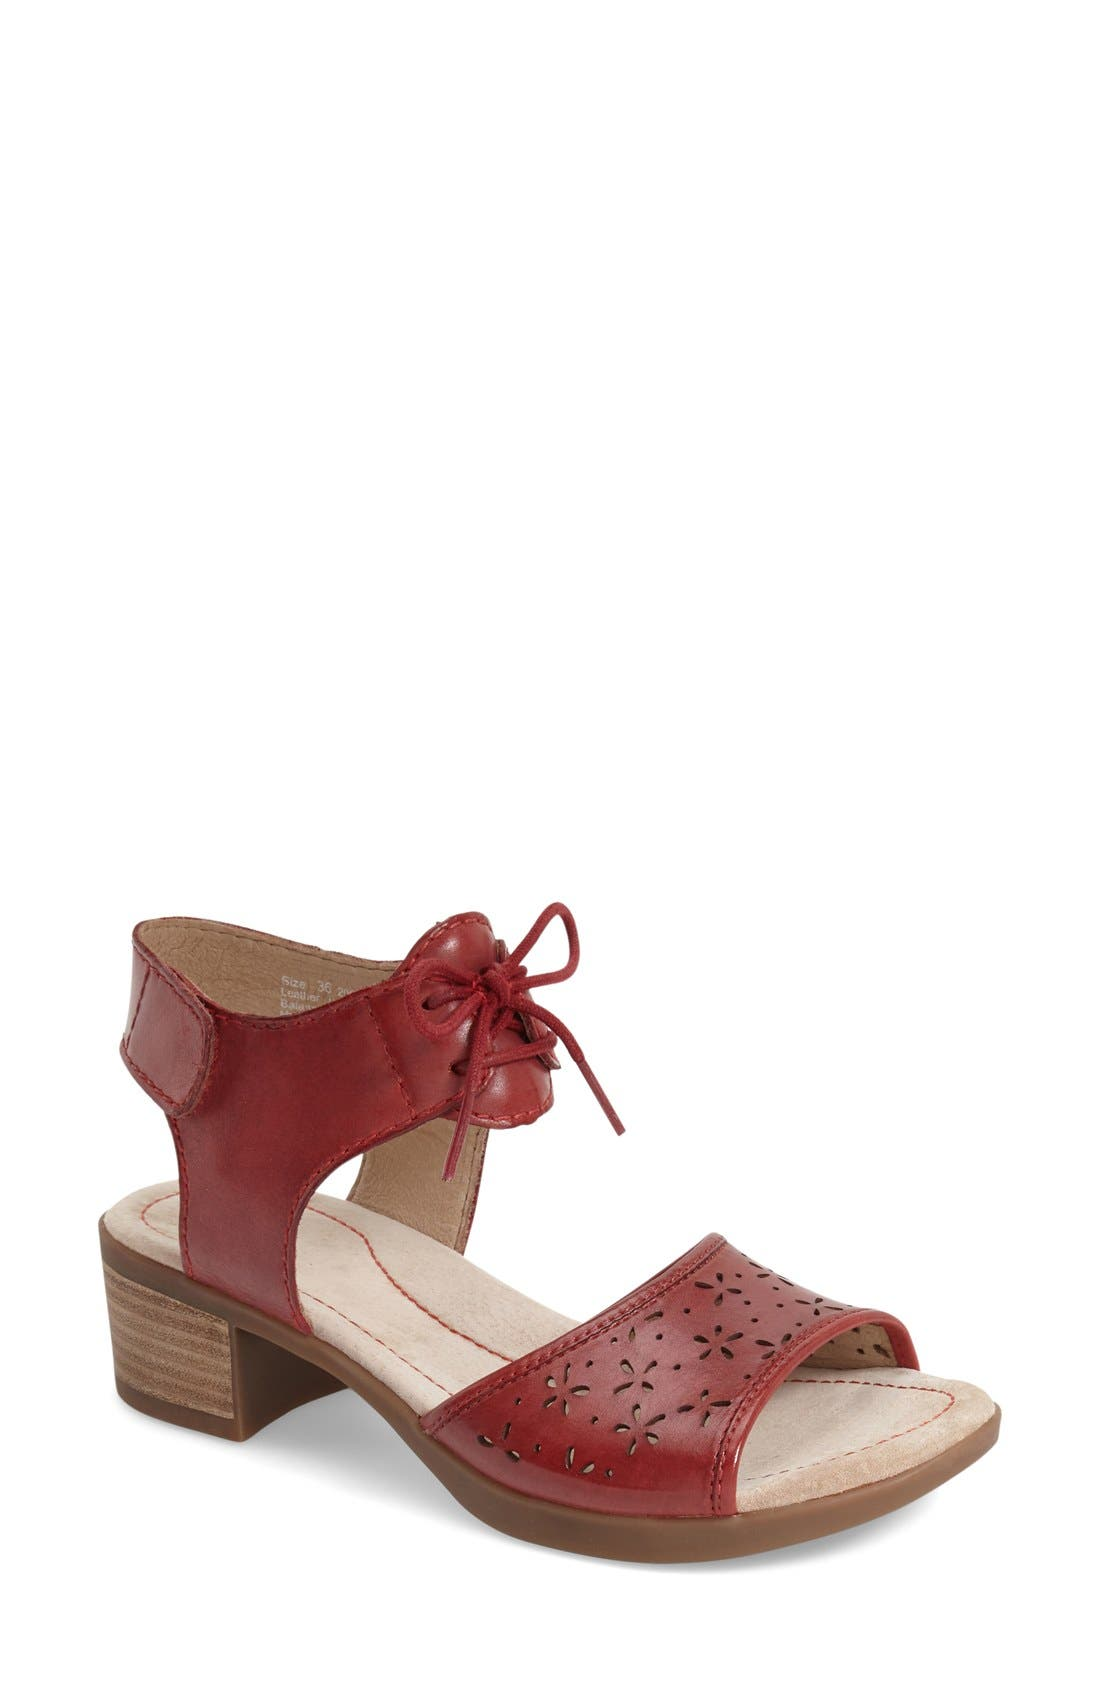 'Liz' Lace-Up Block Heel Sandal,                             Main thumbnail 1, color,                             Red Antiqued Leather